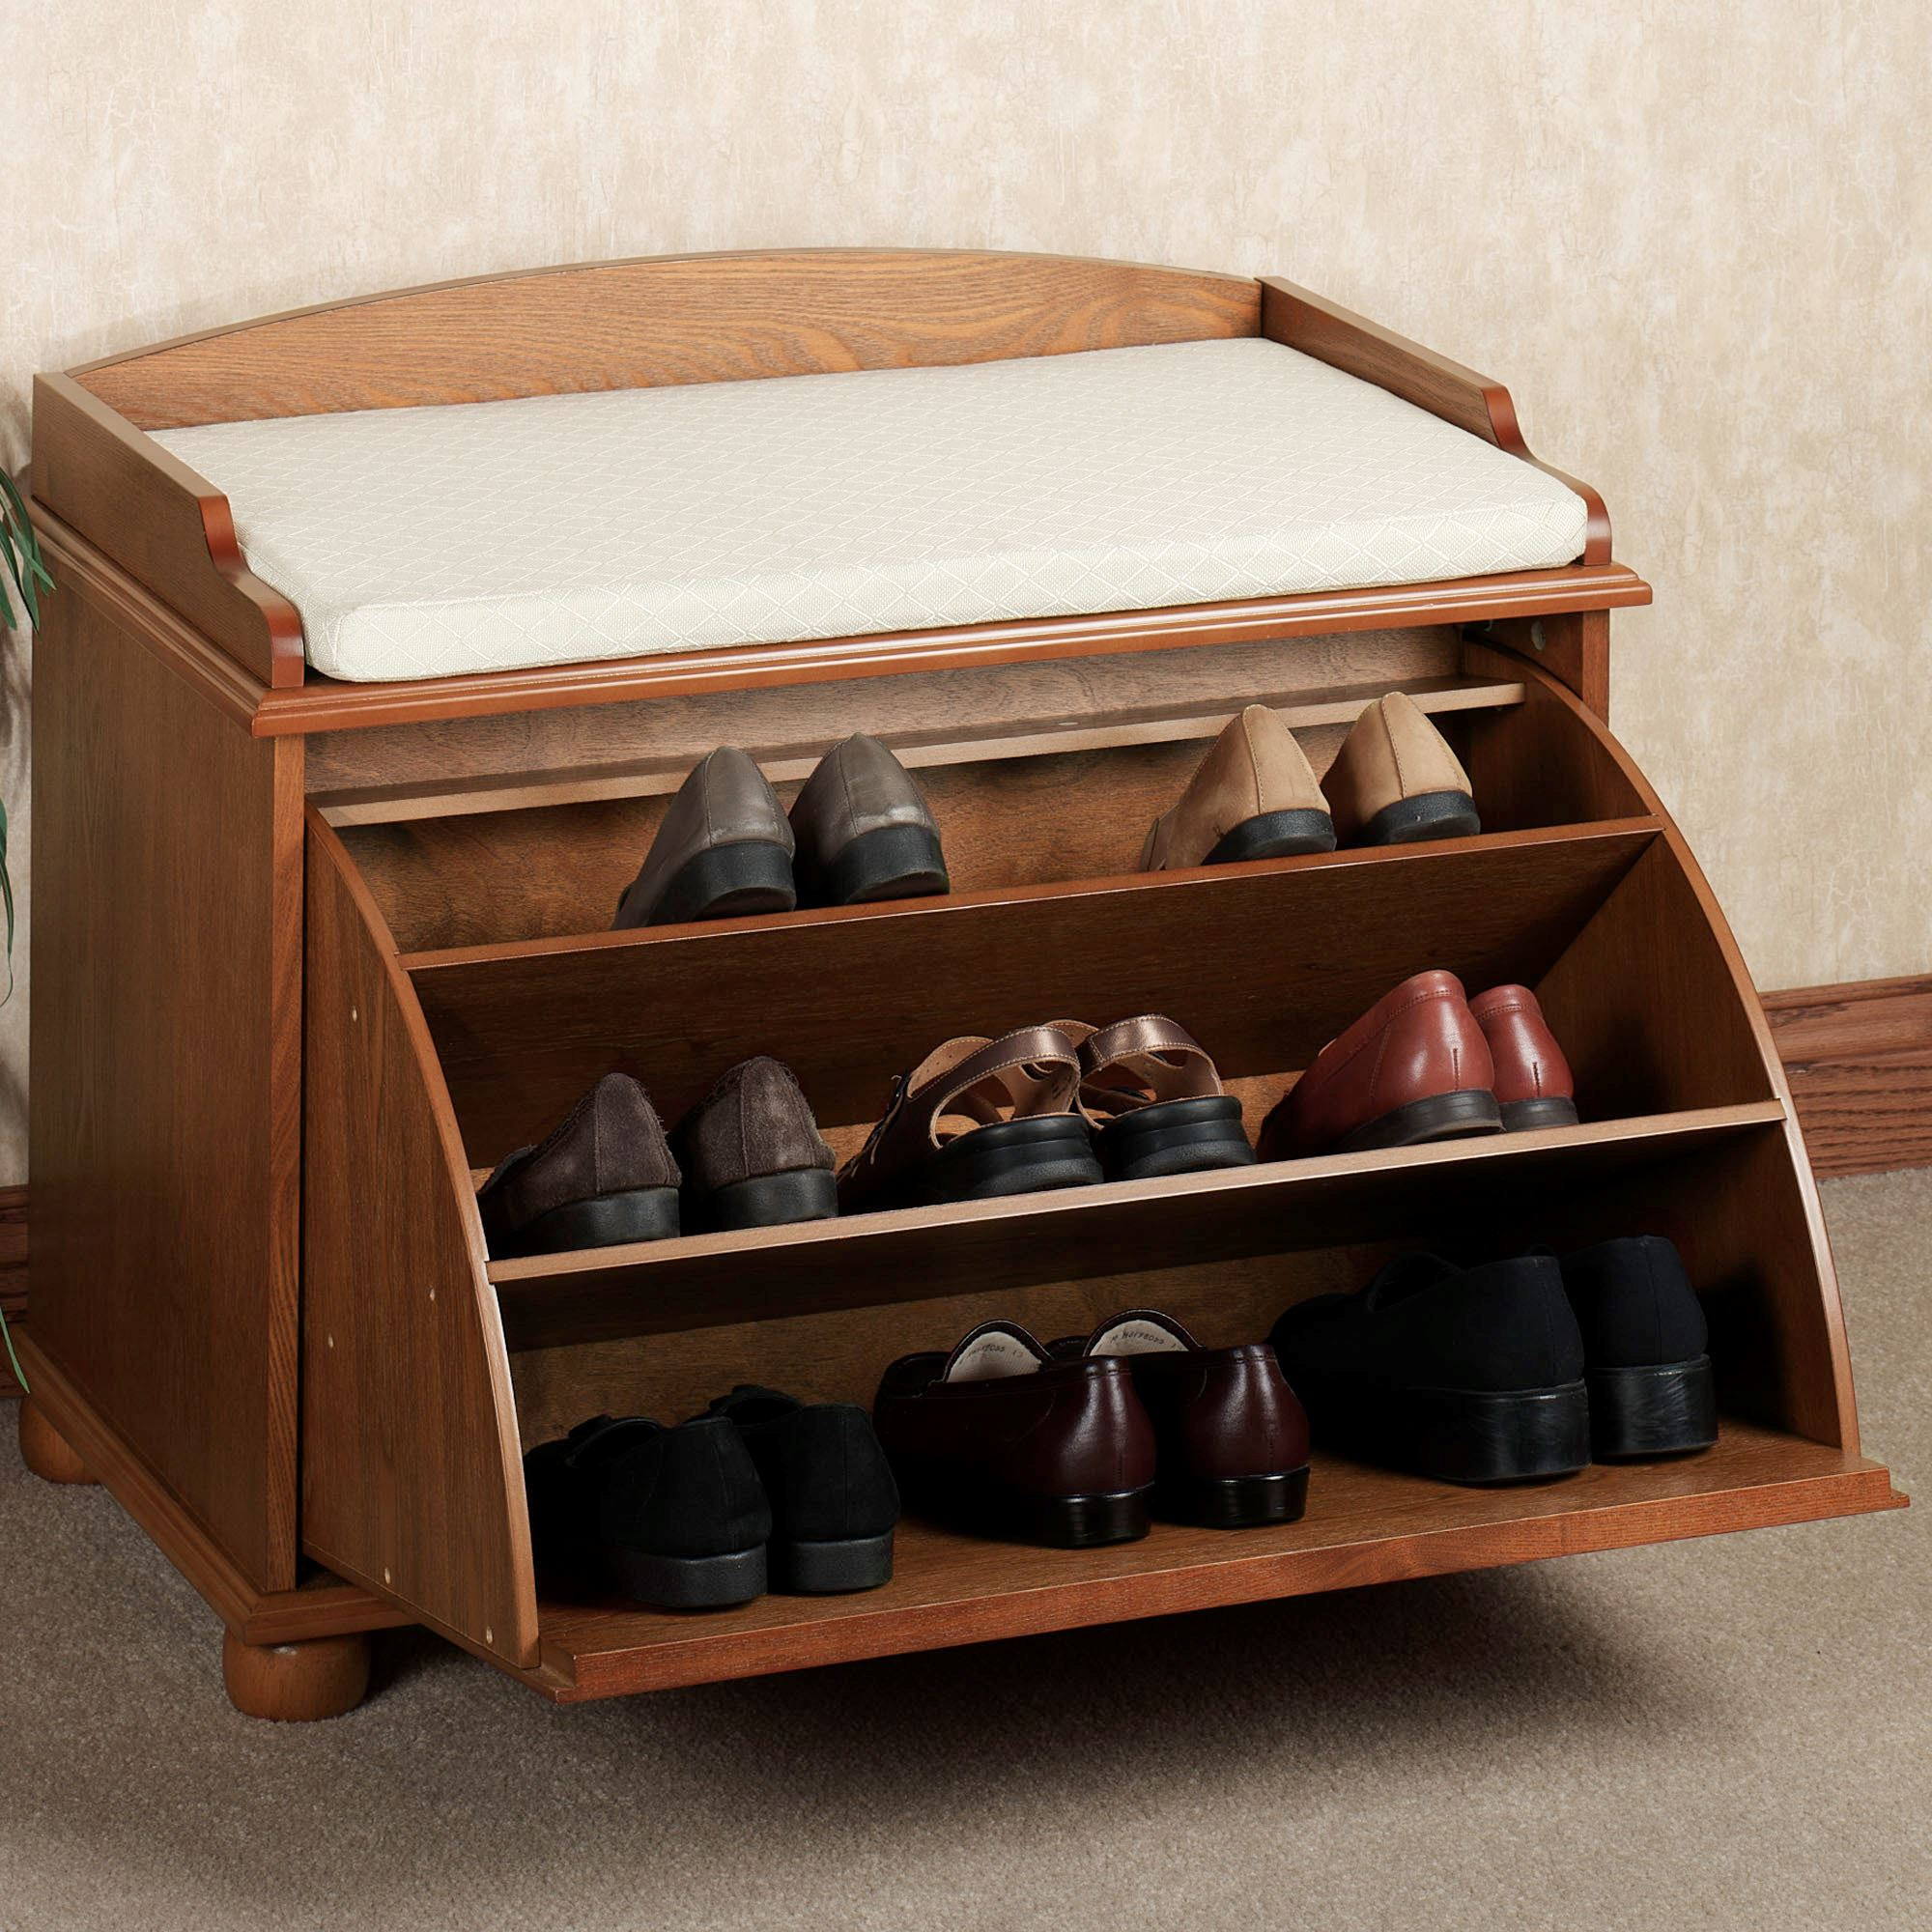 Fullsize Of Bench With Shoe Storage